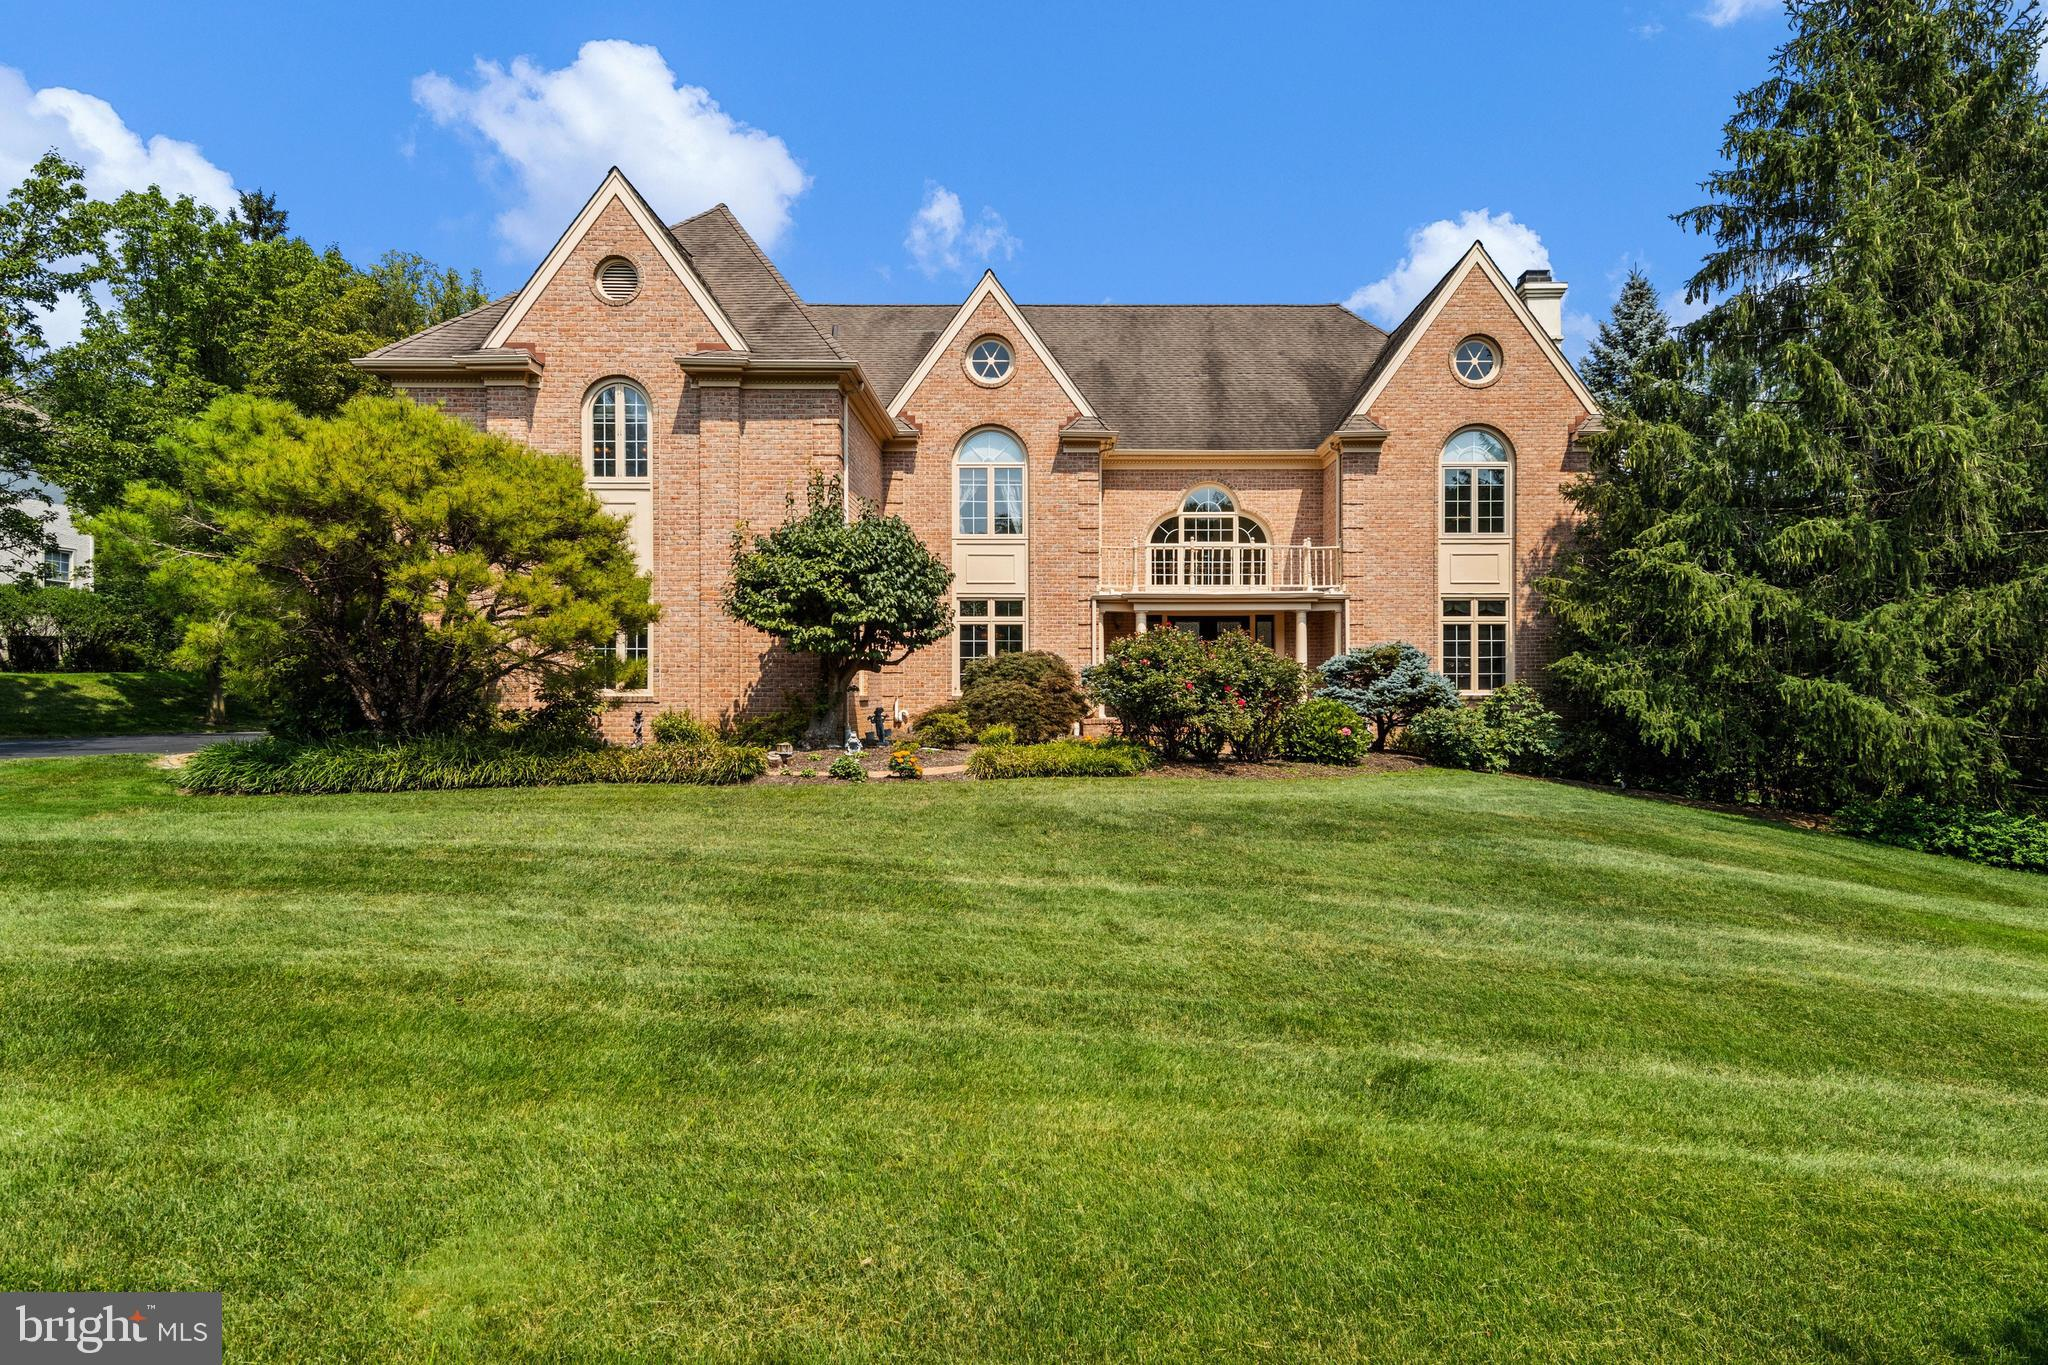 This stately, brick 5 BD, 4/3 BA manor home is nestled on Van Lears Run in Villanova, a quiet cul-de-sac street in a prestigious Radnor Township neighborhood. Located near the Ardrossan Estate, this property is convenient to the Blue Route, Center City, and Airport. The level, nearly 1 acre yard features flowering shrubs, mature specimen plantings, and sweeping expanses of manicured lawn for recreation. The light-filled, 2-story Entrance Hall features large arched windows, a curved staircase, and marble flooring. Entertain guests in the gracious Living Room with fireplace, followed by meals in the large formal Dining Room, which has an adjoining Wet Bar, complete with a wine frig & glass-front cabinets. Work from home in the private, 1st floor Office/Library, which also has built-in shelving. The soaring Family Room is perfect for relaxing and features a cathedral ceiling with skylights, exposed beams, and a 2nd fireplace. You'll never run out of storage or counter space in the large Kitchen, which features cherry cabinets, gas cooktop, double wall ovens, microwave, and a large stainless refrigerator. The vaulted Breakfast Room and barstool seating at the island offer ample space for casual everyday dining, and a built-in desk is ideal for menu planning or homework. The Mudroom and Laundry Room are located near the oversized 3-car Garage. Formal and casual Powder Rooms and more closets complete the 1st floor. Upstairs, a curved 2nd floor balcony with pillars overlooks the Family Room. The Master BD suite has a large sitting room, tray ceiling, 2 walk-in closets, luxurious Master BA with large tub & separate shower, and a private staircase to the 1st floor. Bedroom 2 has an en suite full BA. Bedrooms 3 and 4 share a large Jack-n-Jill BA. The 5th Bedroom and 4th full BA are in the walk-out, daylight Lower Level. This area would make an ideal in-law suite, since it also features a large Recreation/Family Room with fireplace, another Wet Bar, closets, and a 3rd Powder R